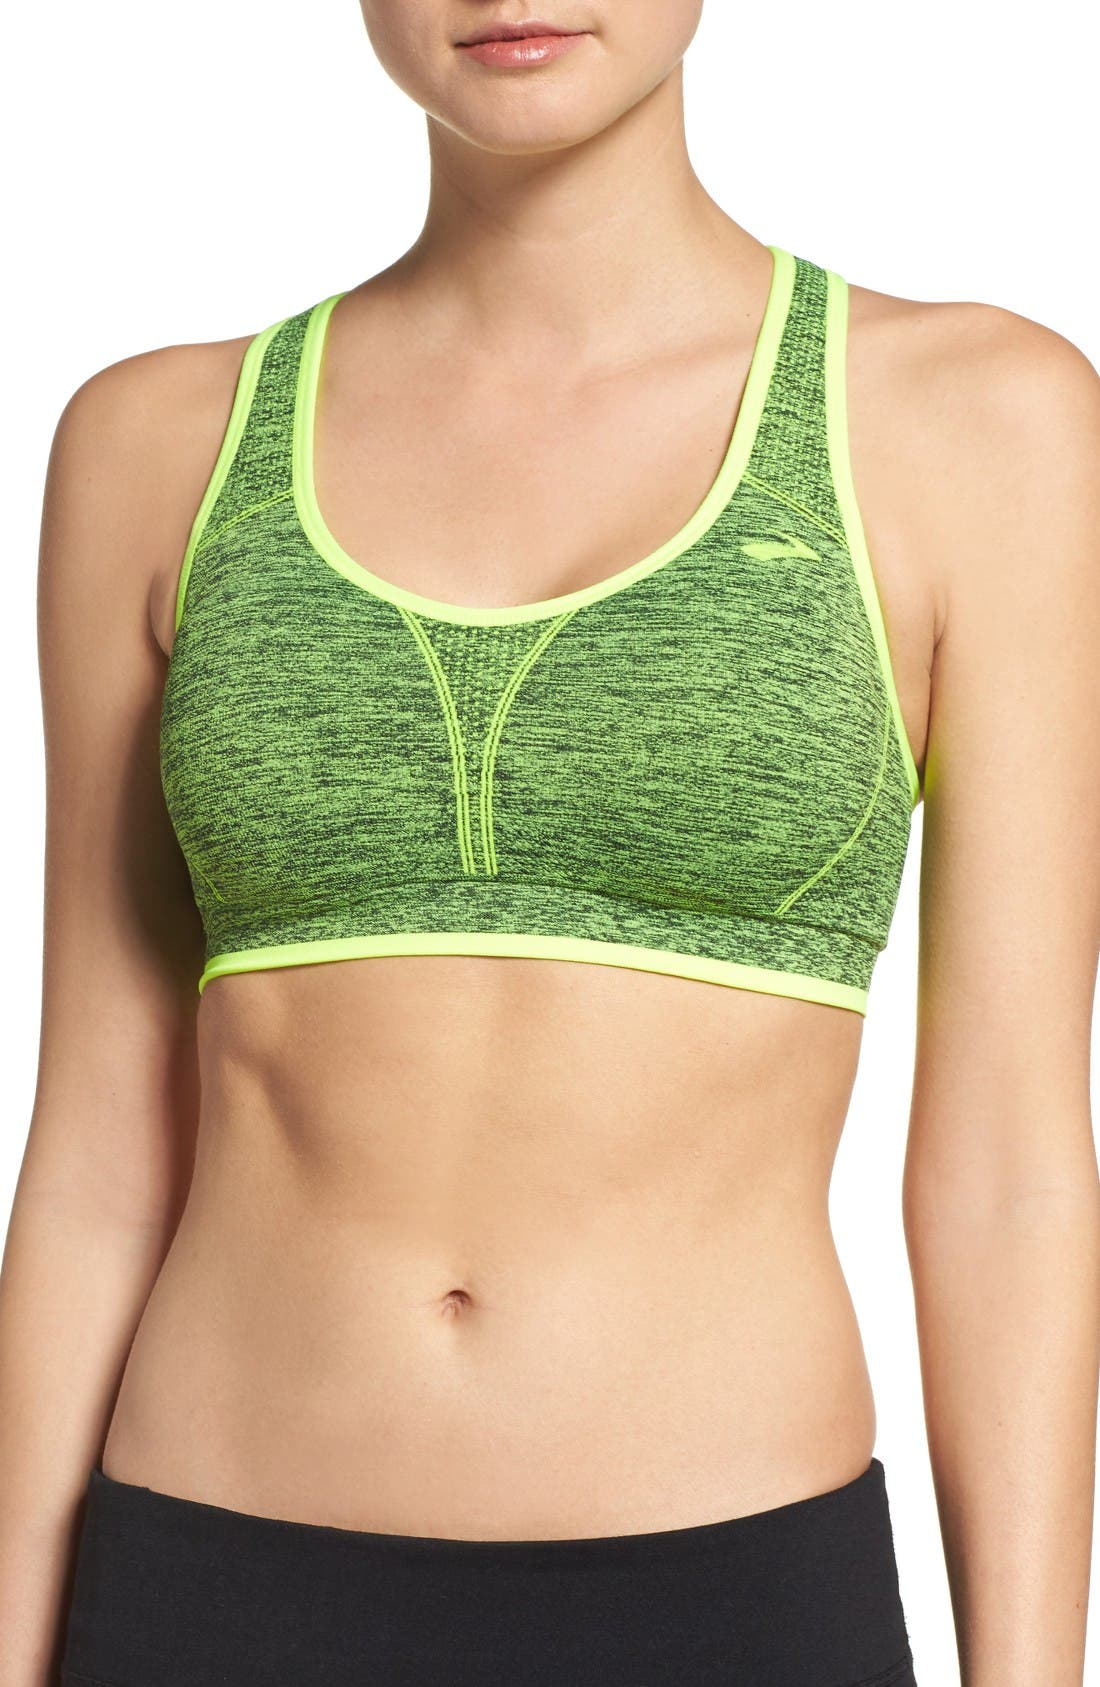 Moving Comfort 'Just Right' Seamless Racerback Sports Bra